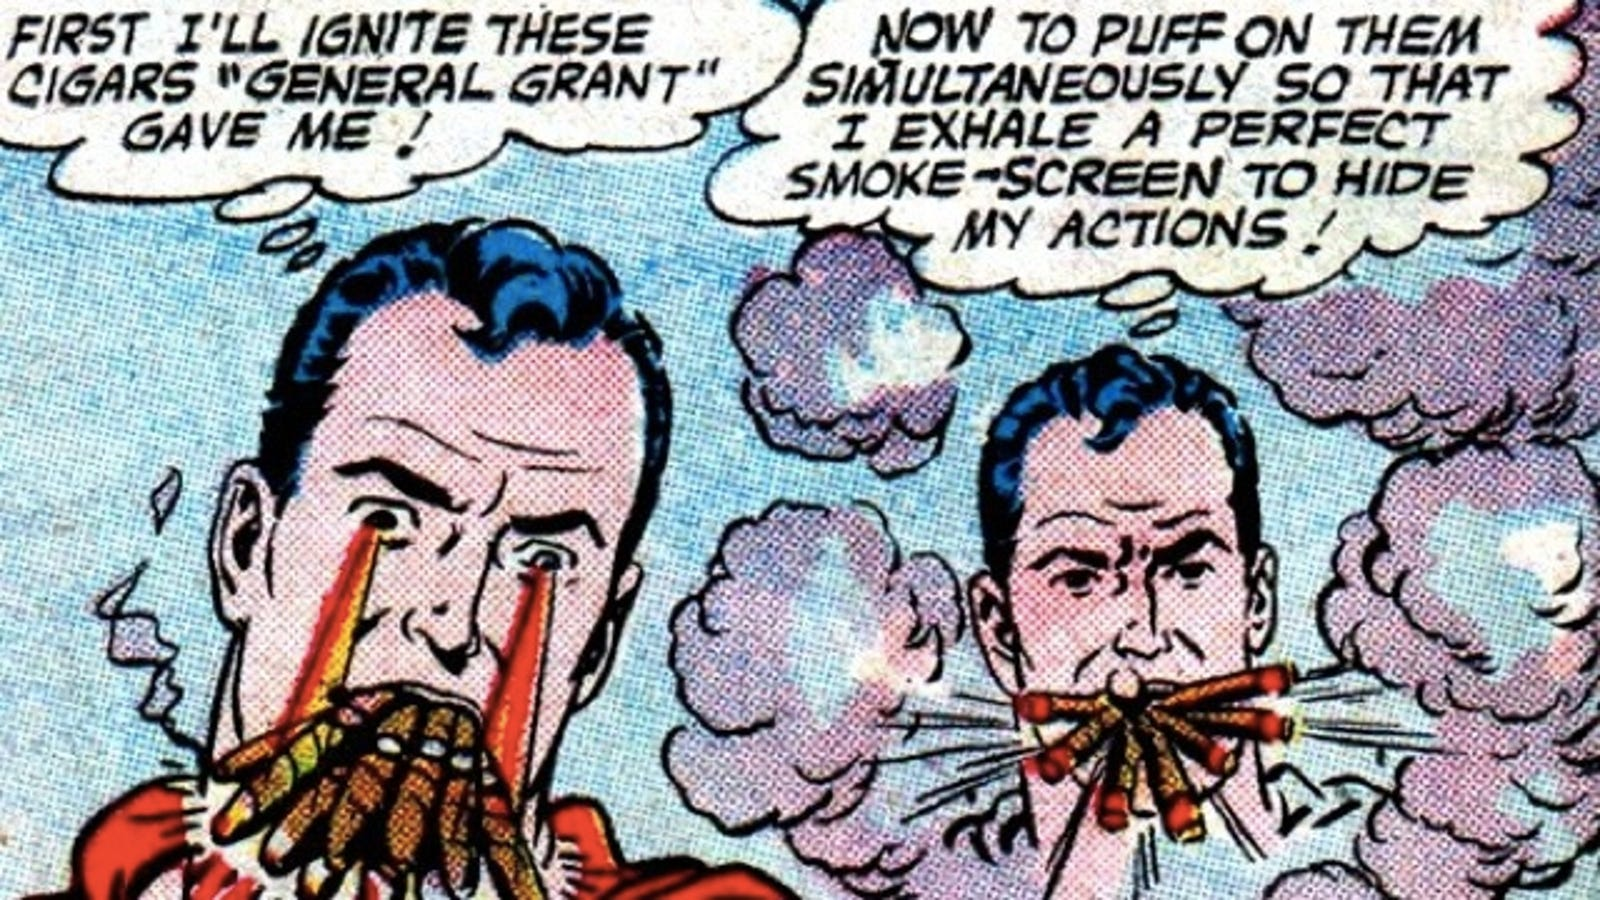 Remember when Superman smoked a dozen cigars at the same time?